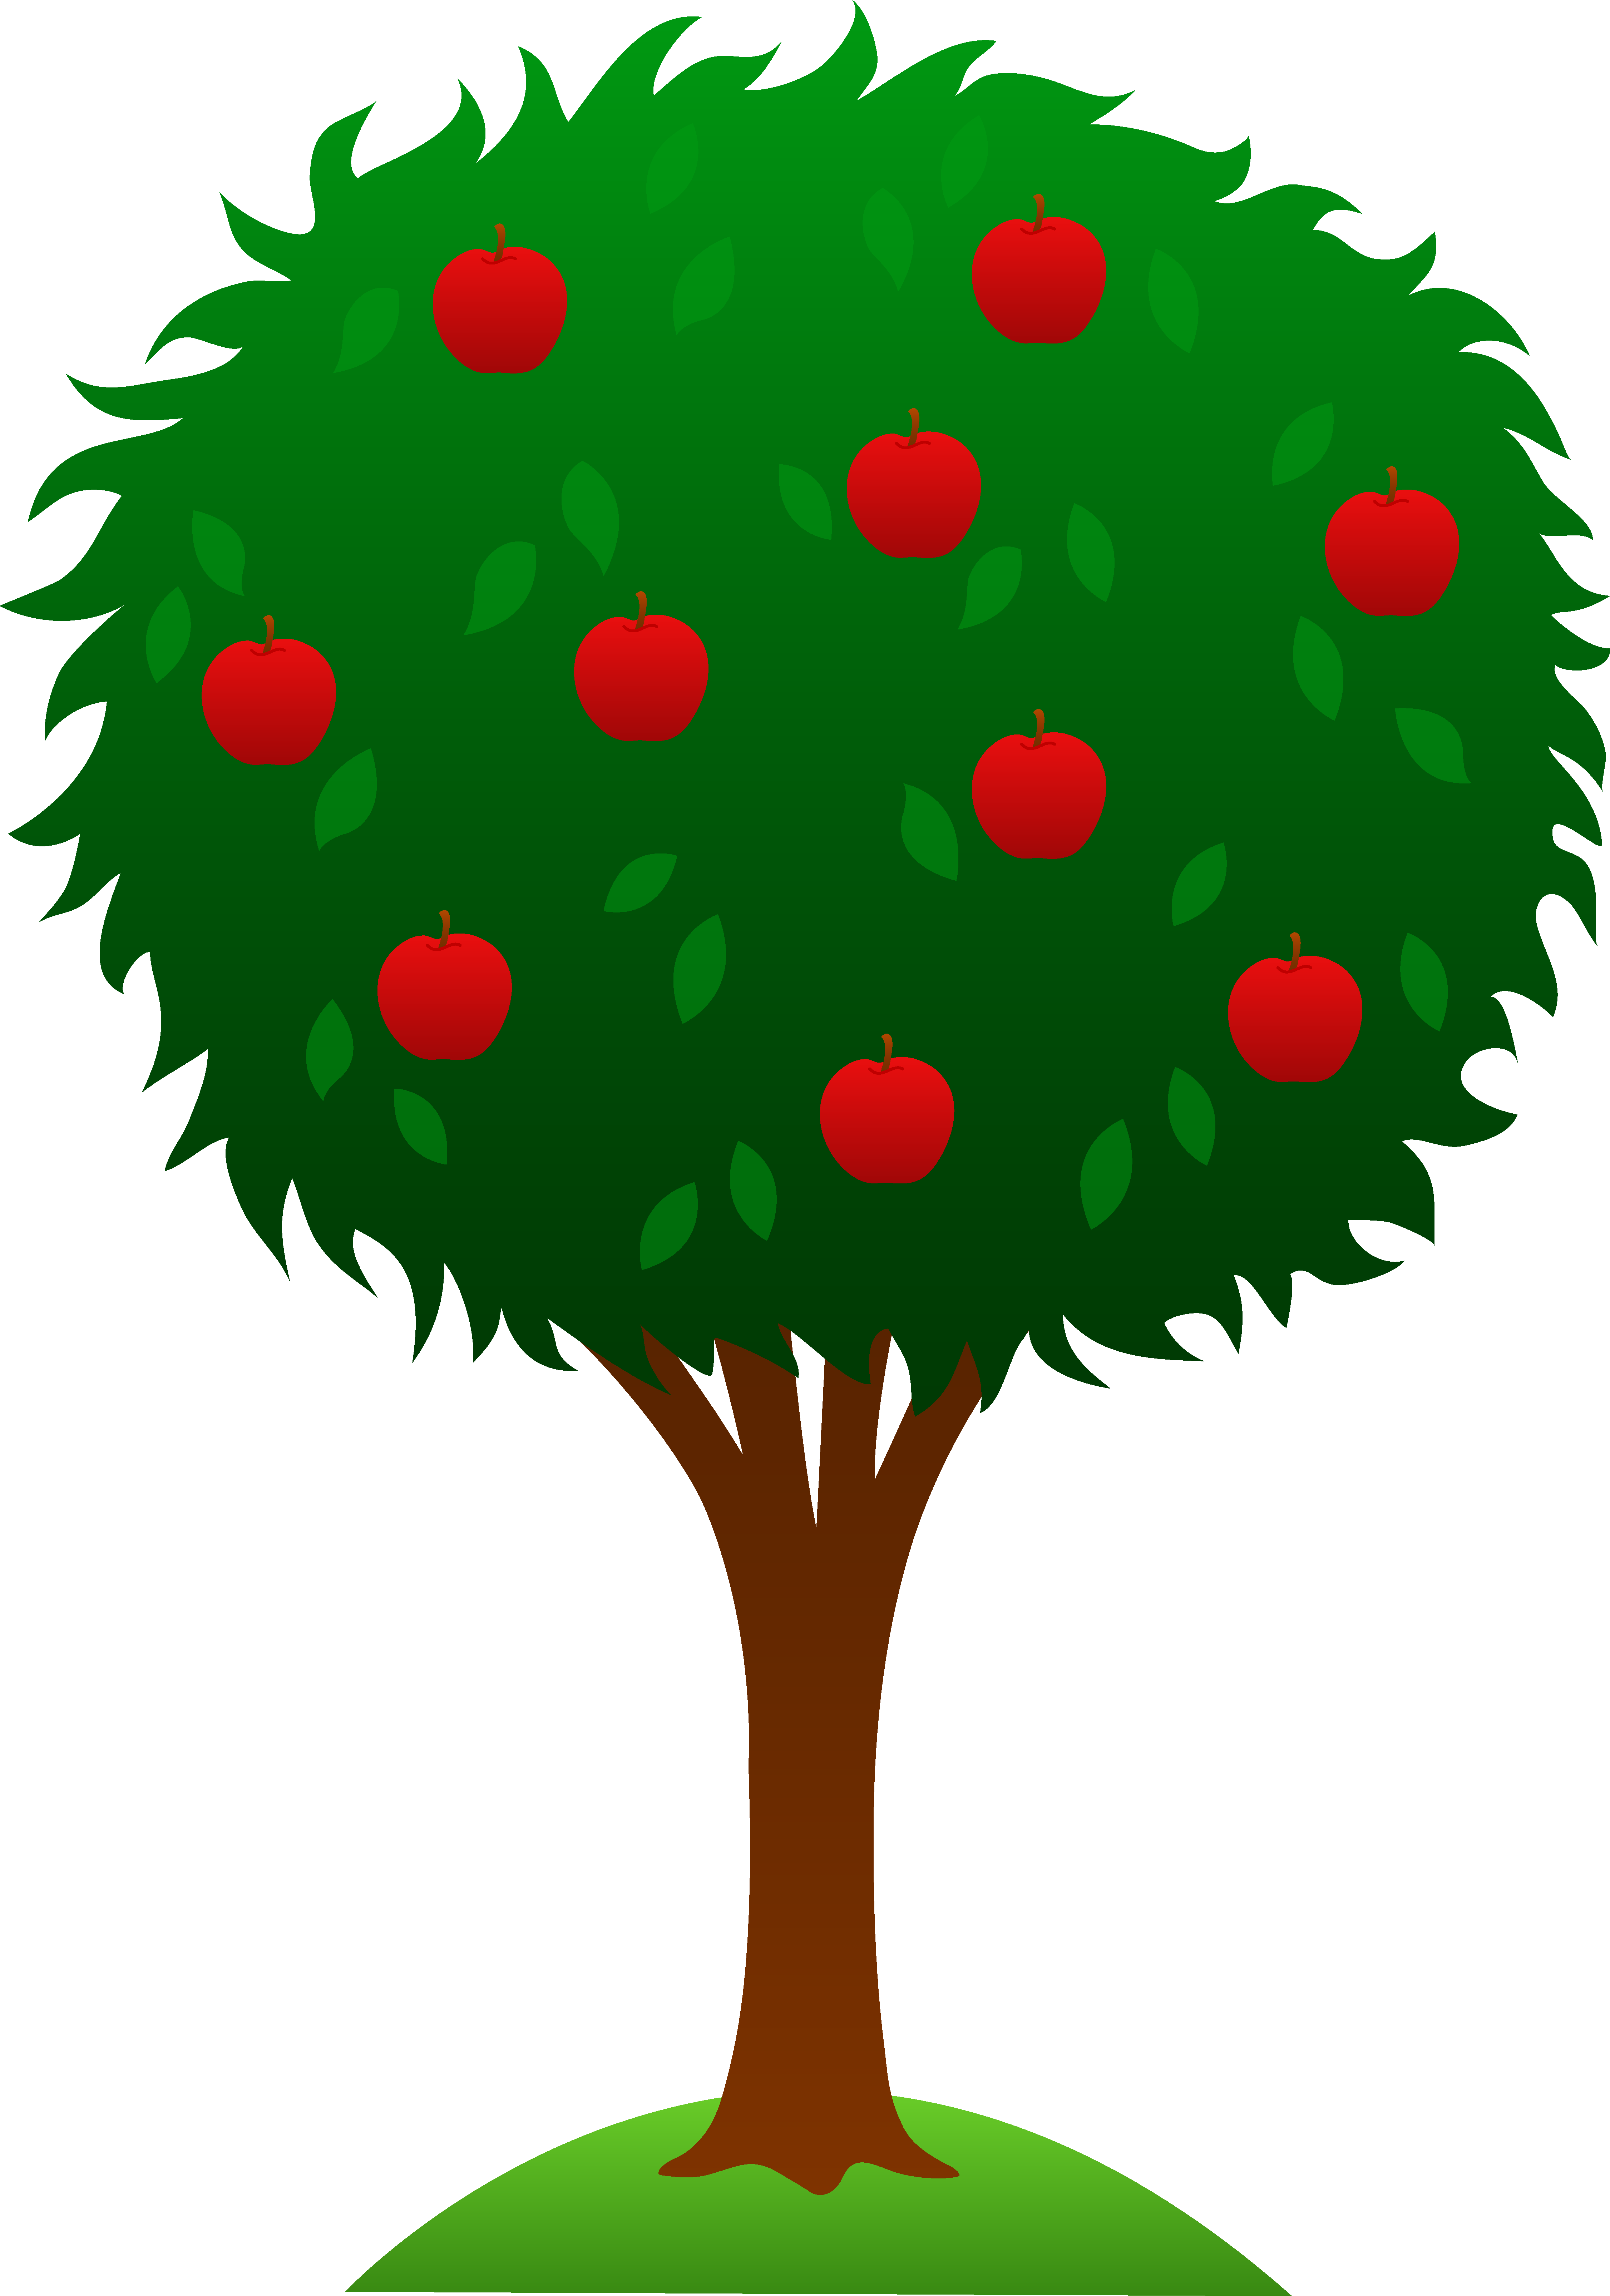 Clipart trees number. Apple tree design free